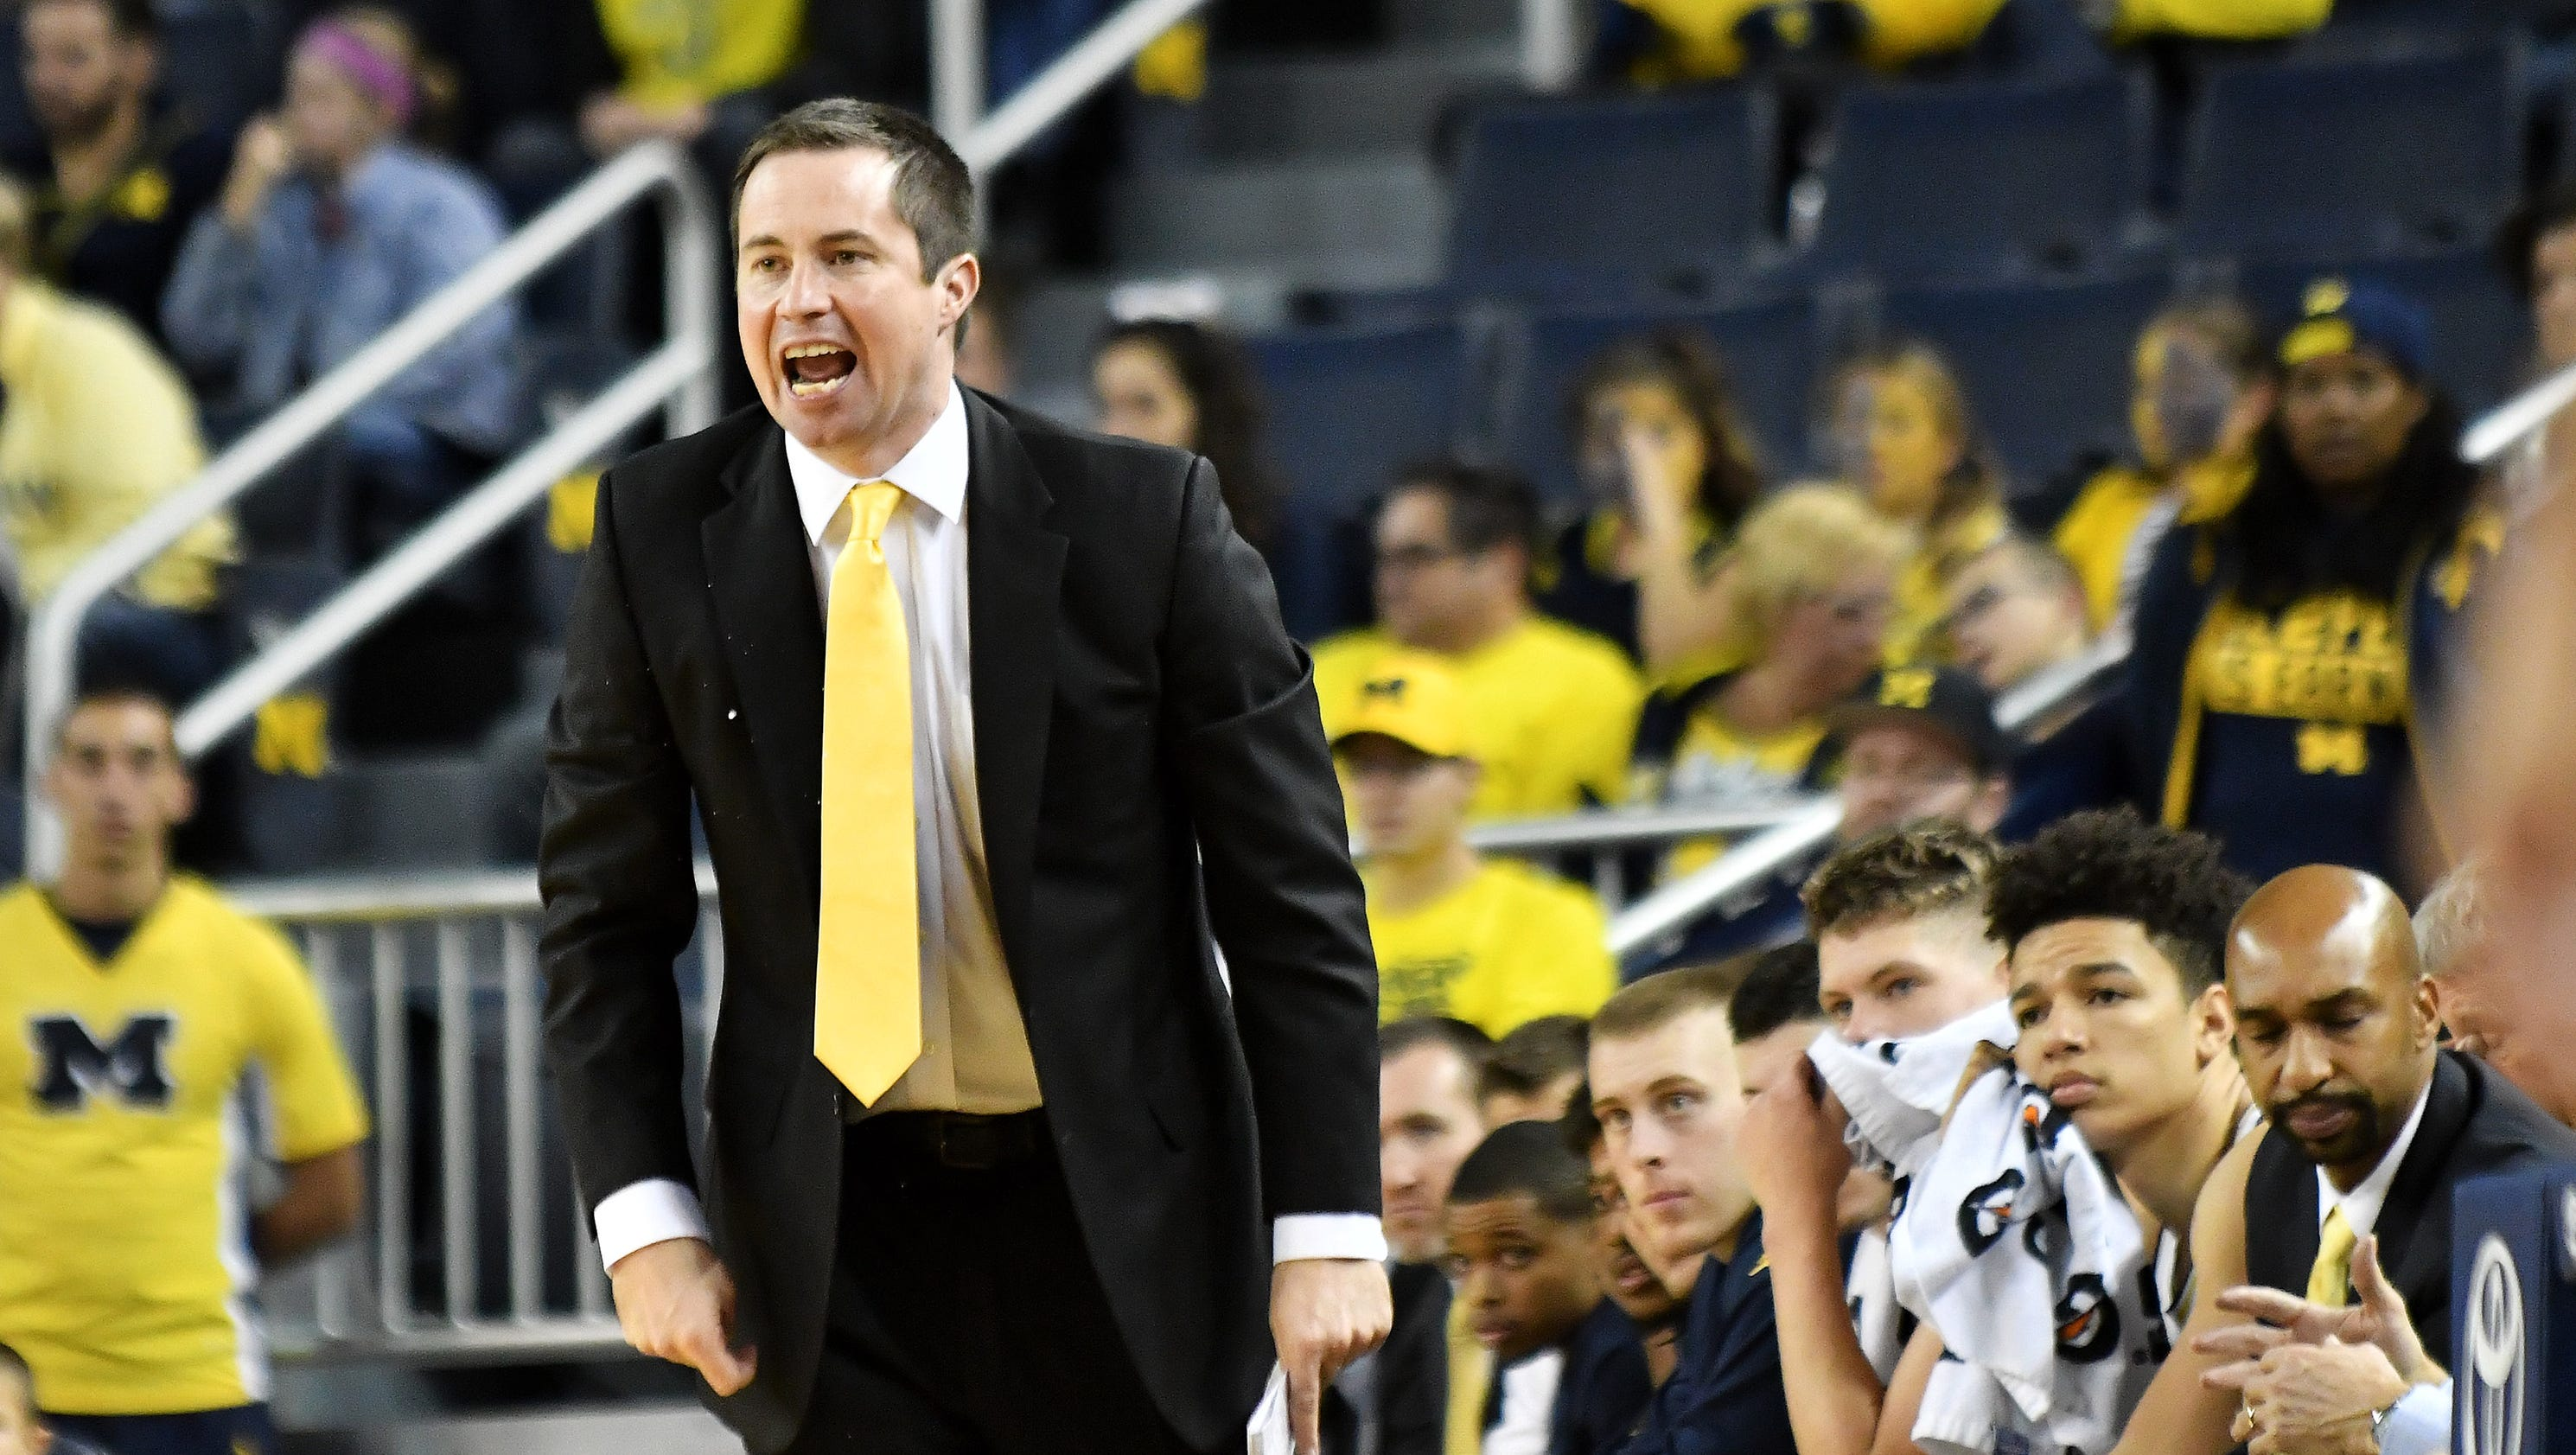 f63eeb88b Assistant coach Billy Donlon is leaving the Michigan basketball program  after one season to take a similar position at Northwestern, according to  Brian Snow ...